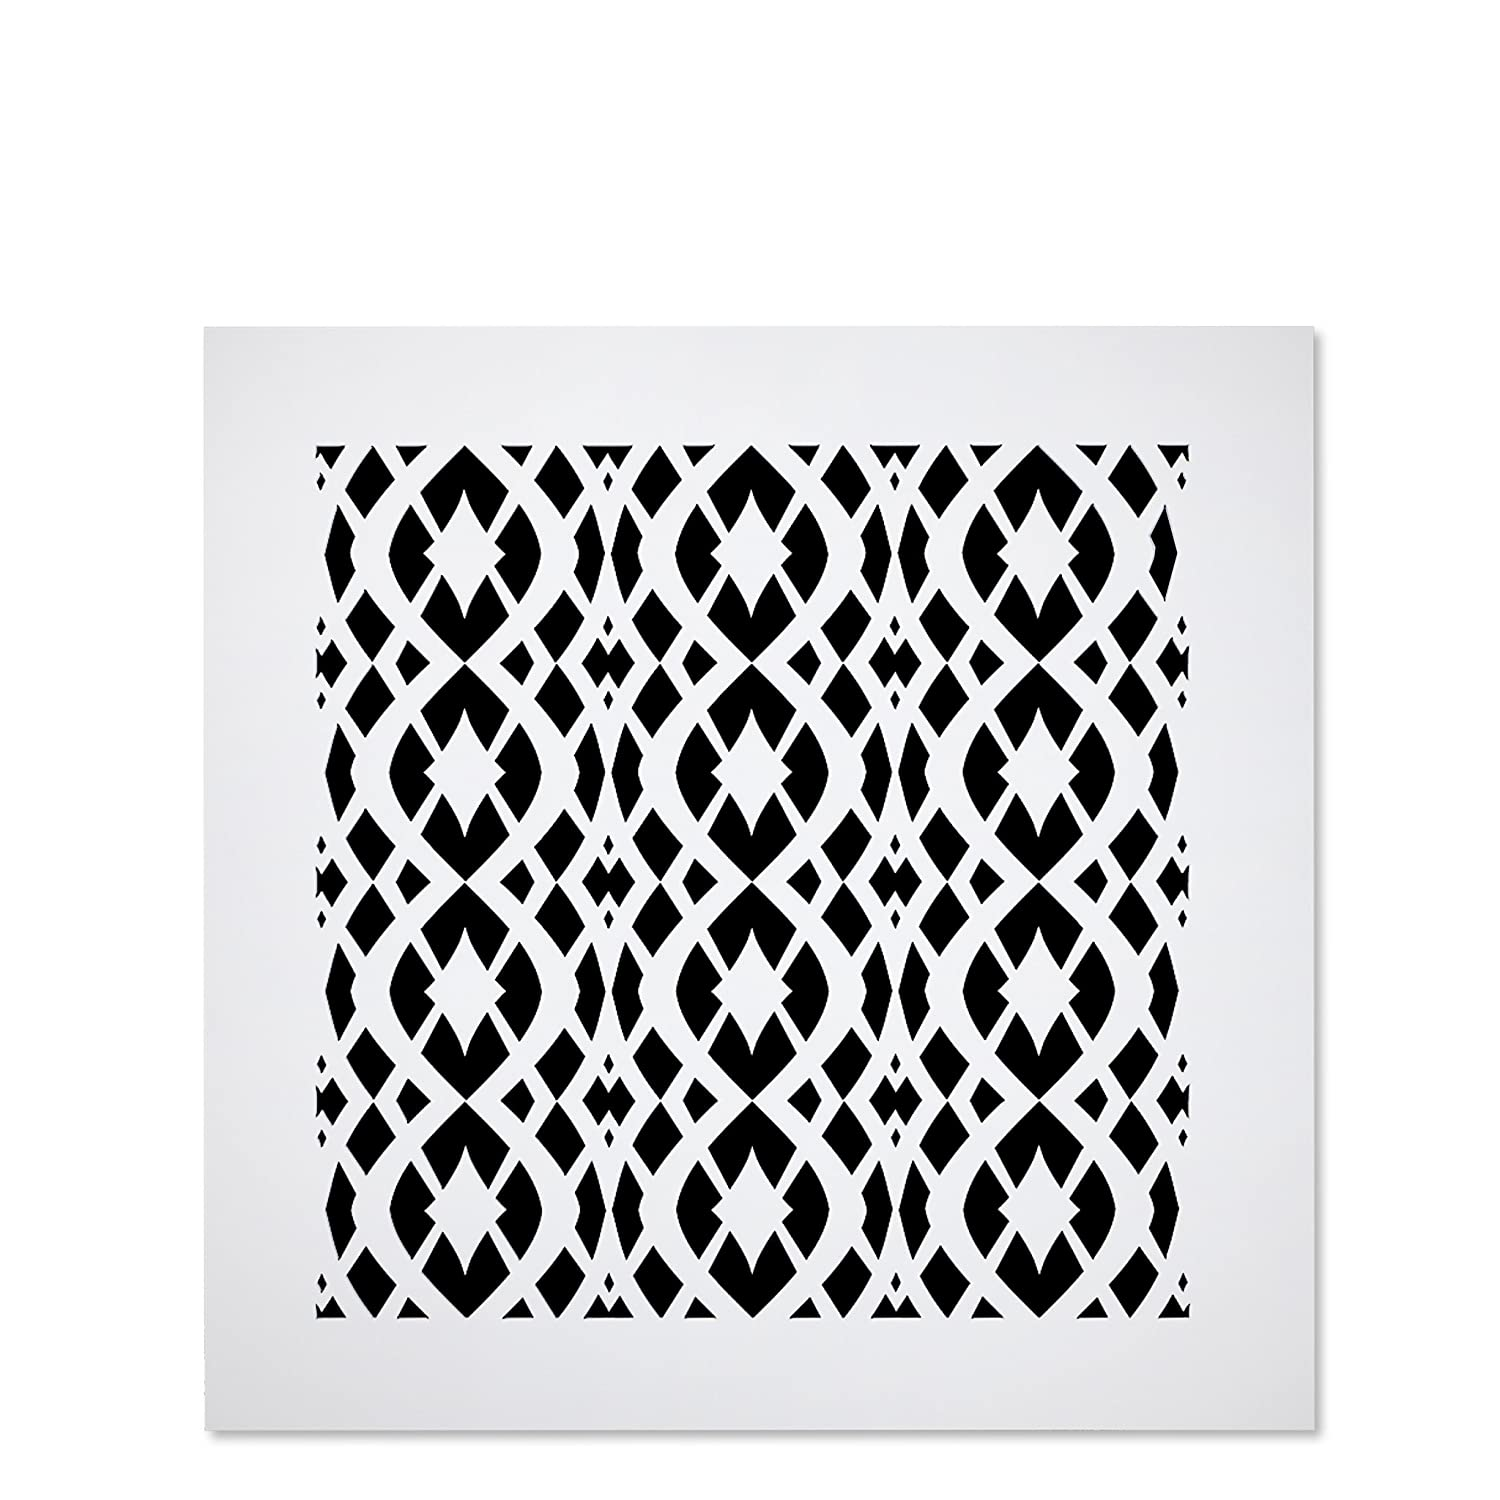 """Saba Air Vent Cover Grille - Acrylic Fiberglass 10"""" x 10"""" Duct Opening (12"""" x 12"""" Overall) White Finish Decorative Register Covers for Walls and Ceilings NOT for Floor USE, Charlotte"""